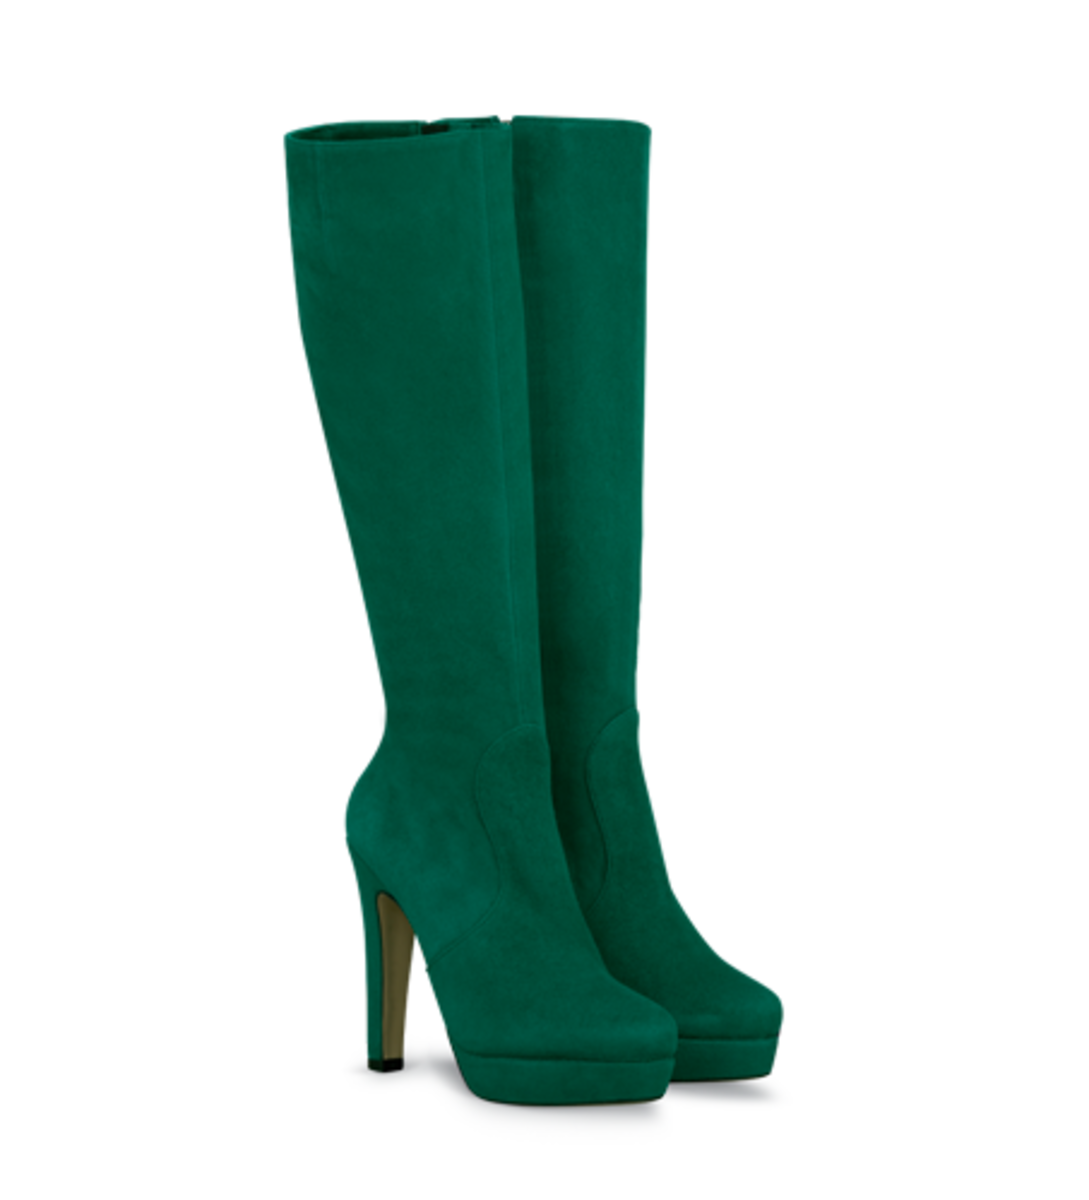 Bach Platform Knee-High Fitted Boot in Suede (Comes in Green, Black, Purple, Fuchsia) - $370